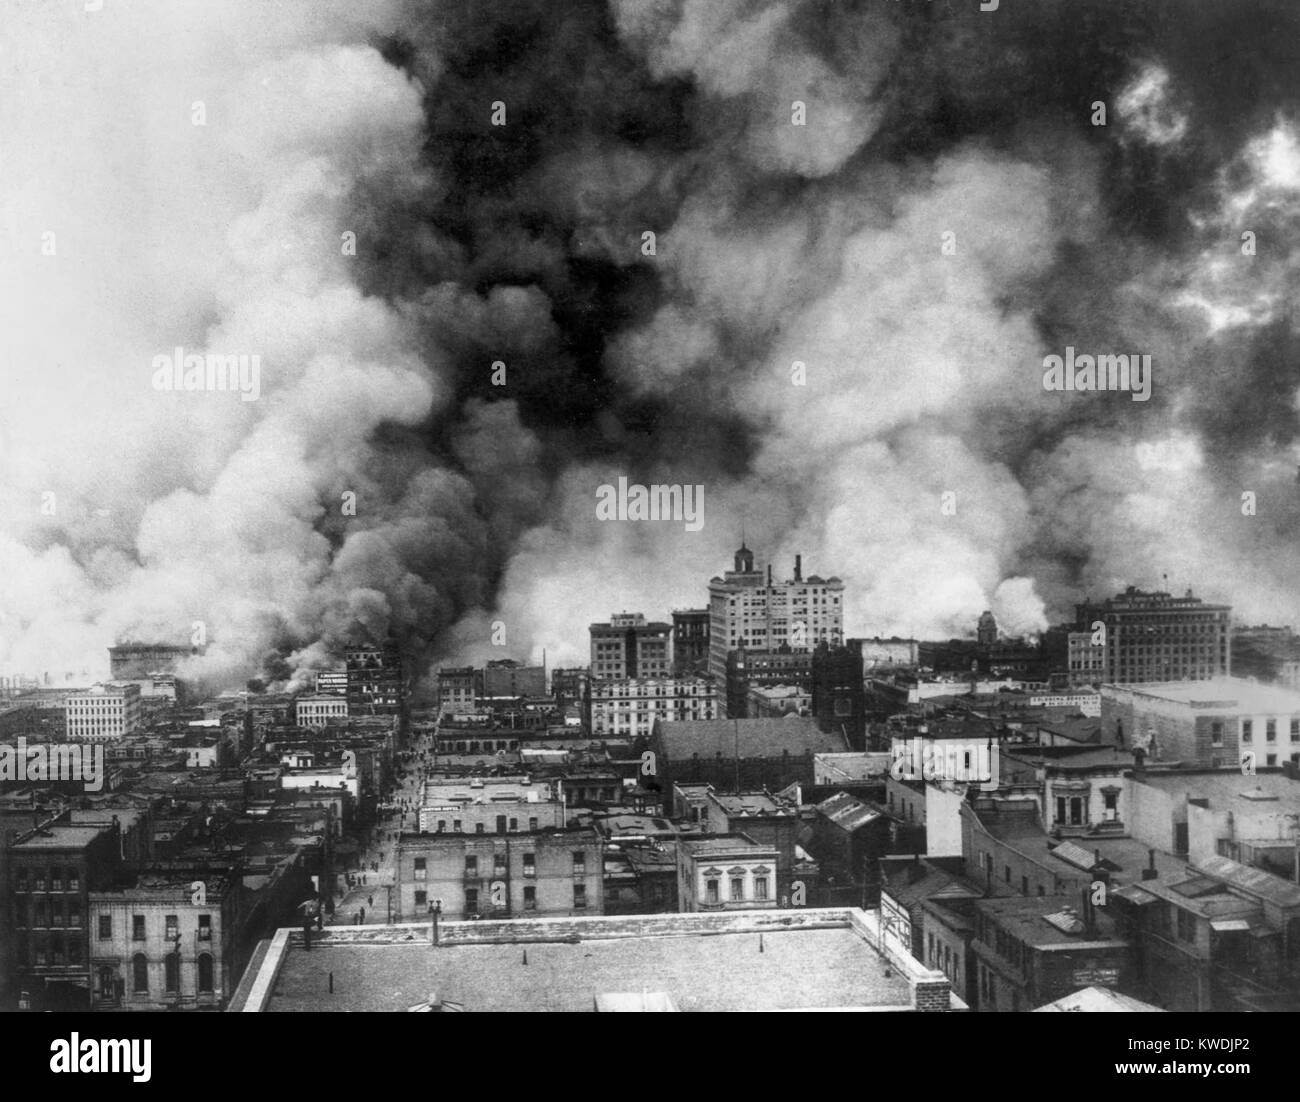 San Francisco in flames after April 18, 1906 earthquake. View includes the area east of Sansome Street, north of - Stock Image